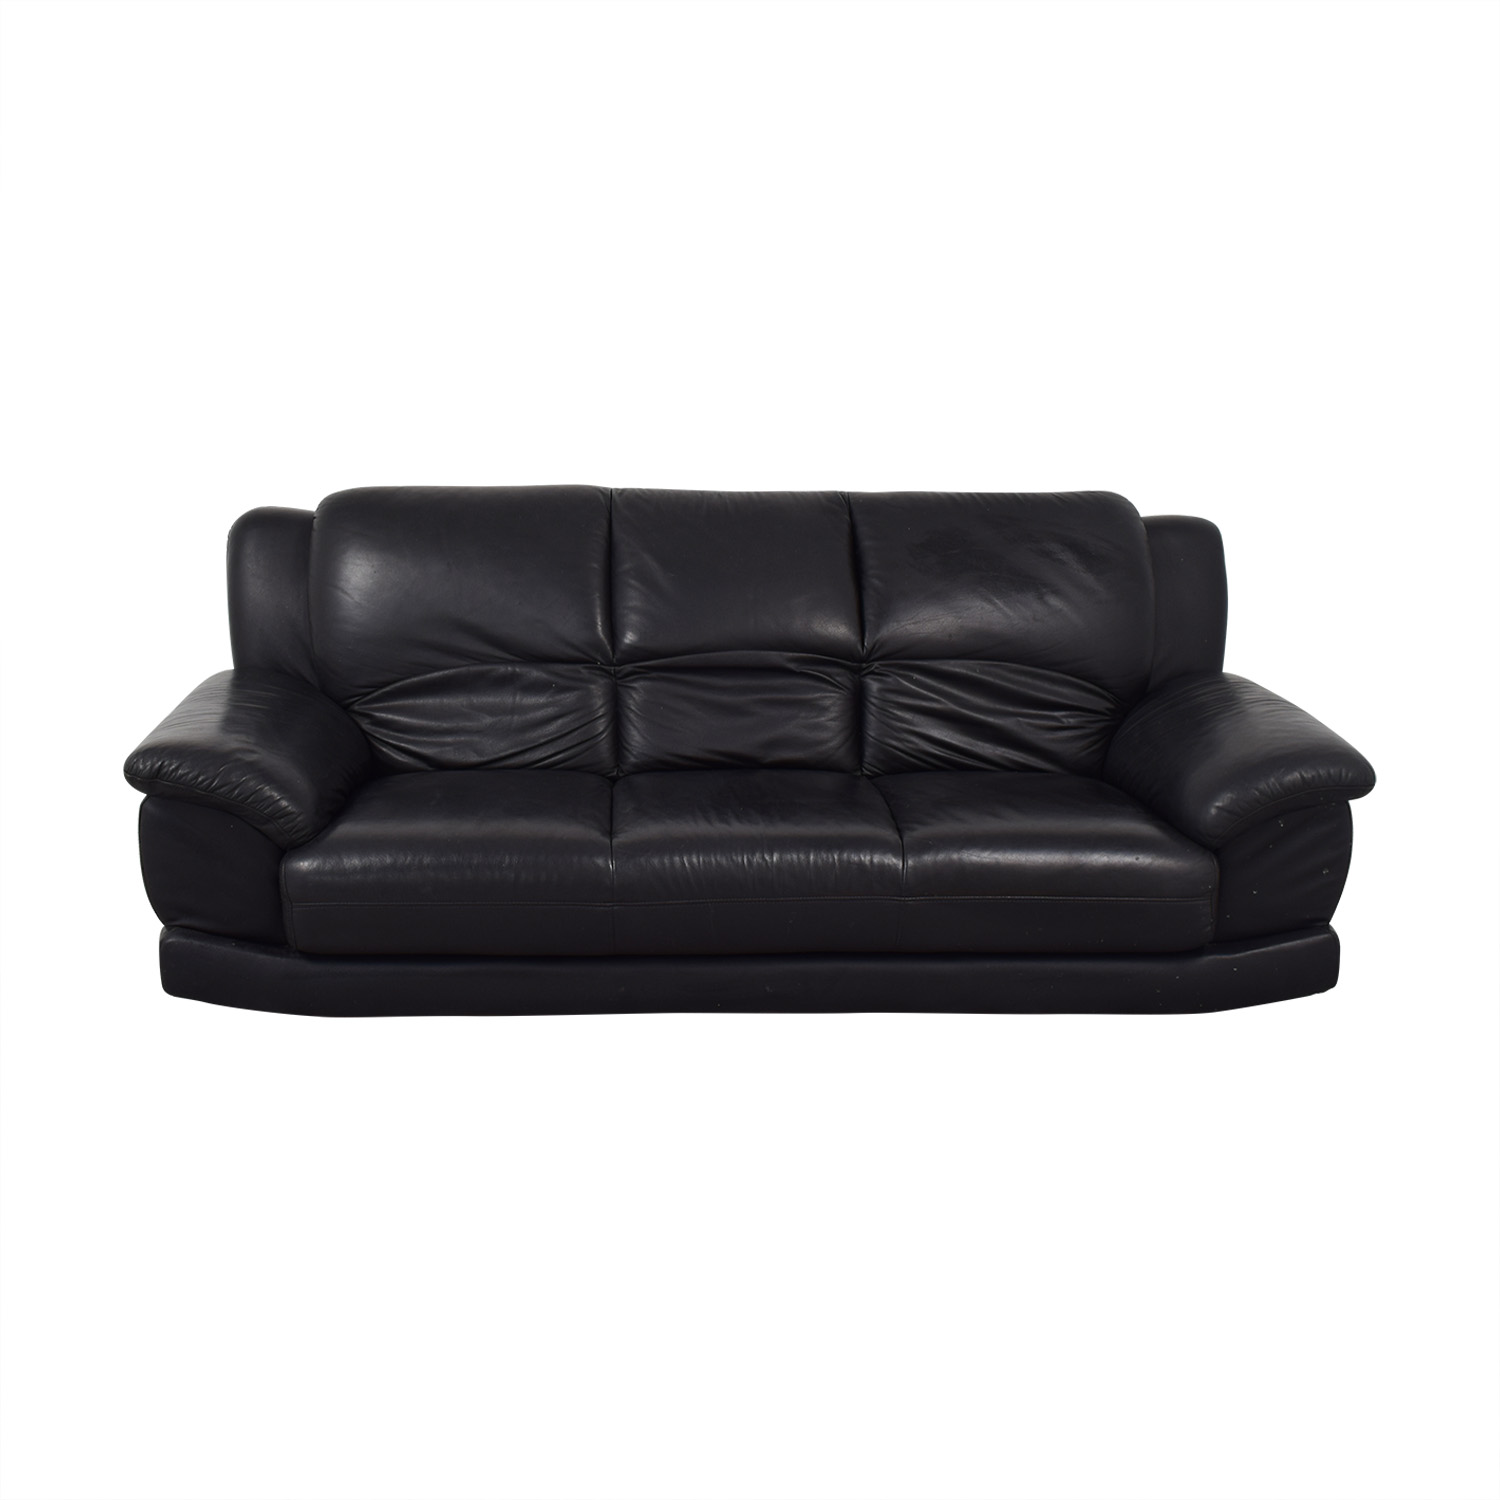 buy Ashley Furniture Ashley Furniture Leather Sofa online